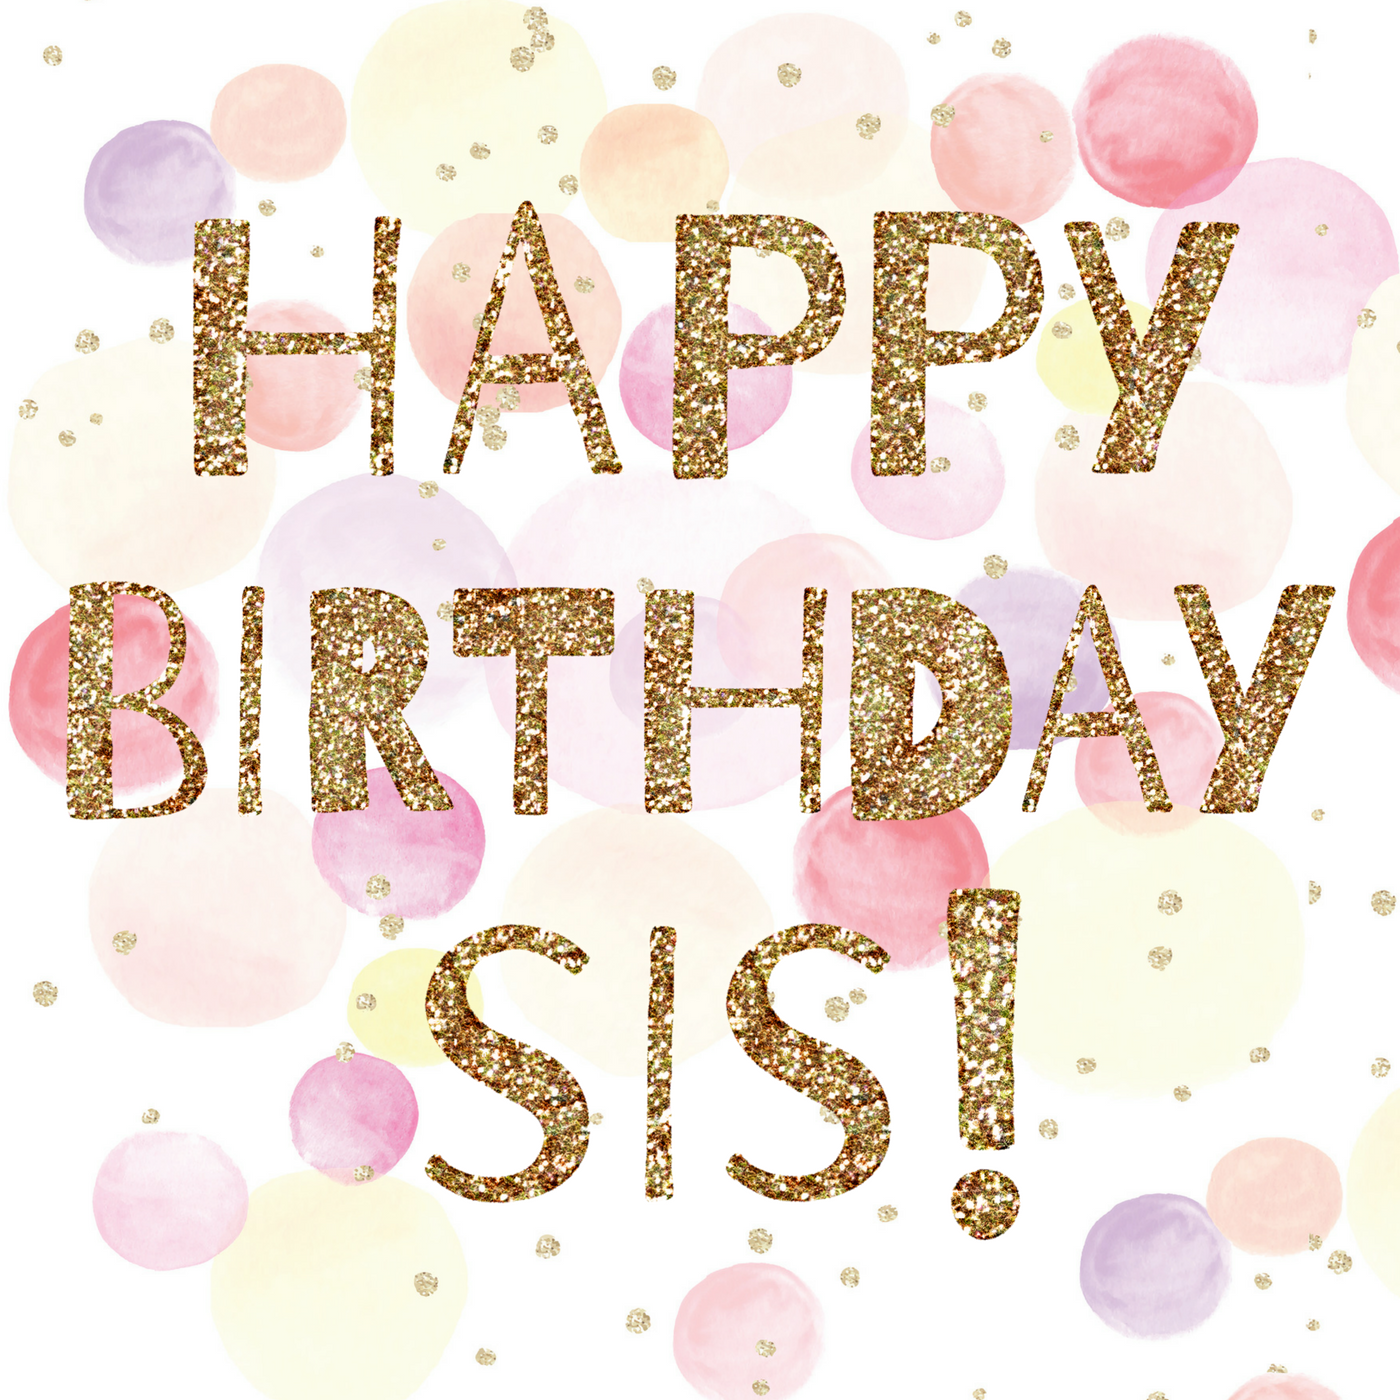 #happybirthday #birthday #birthdaywishes #sis #sister